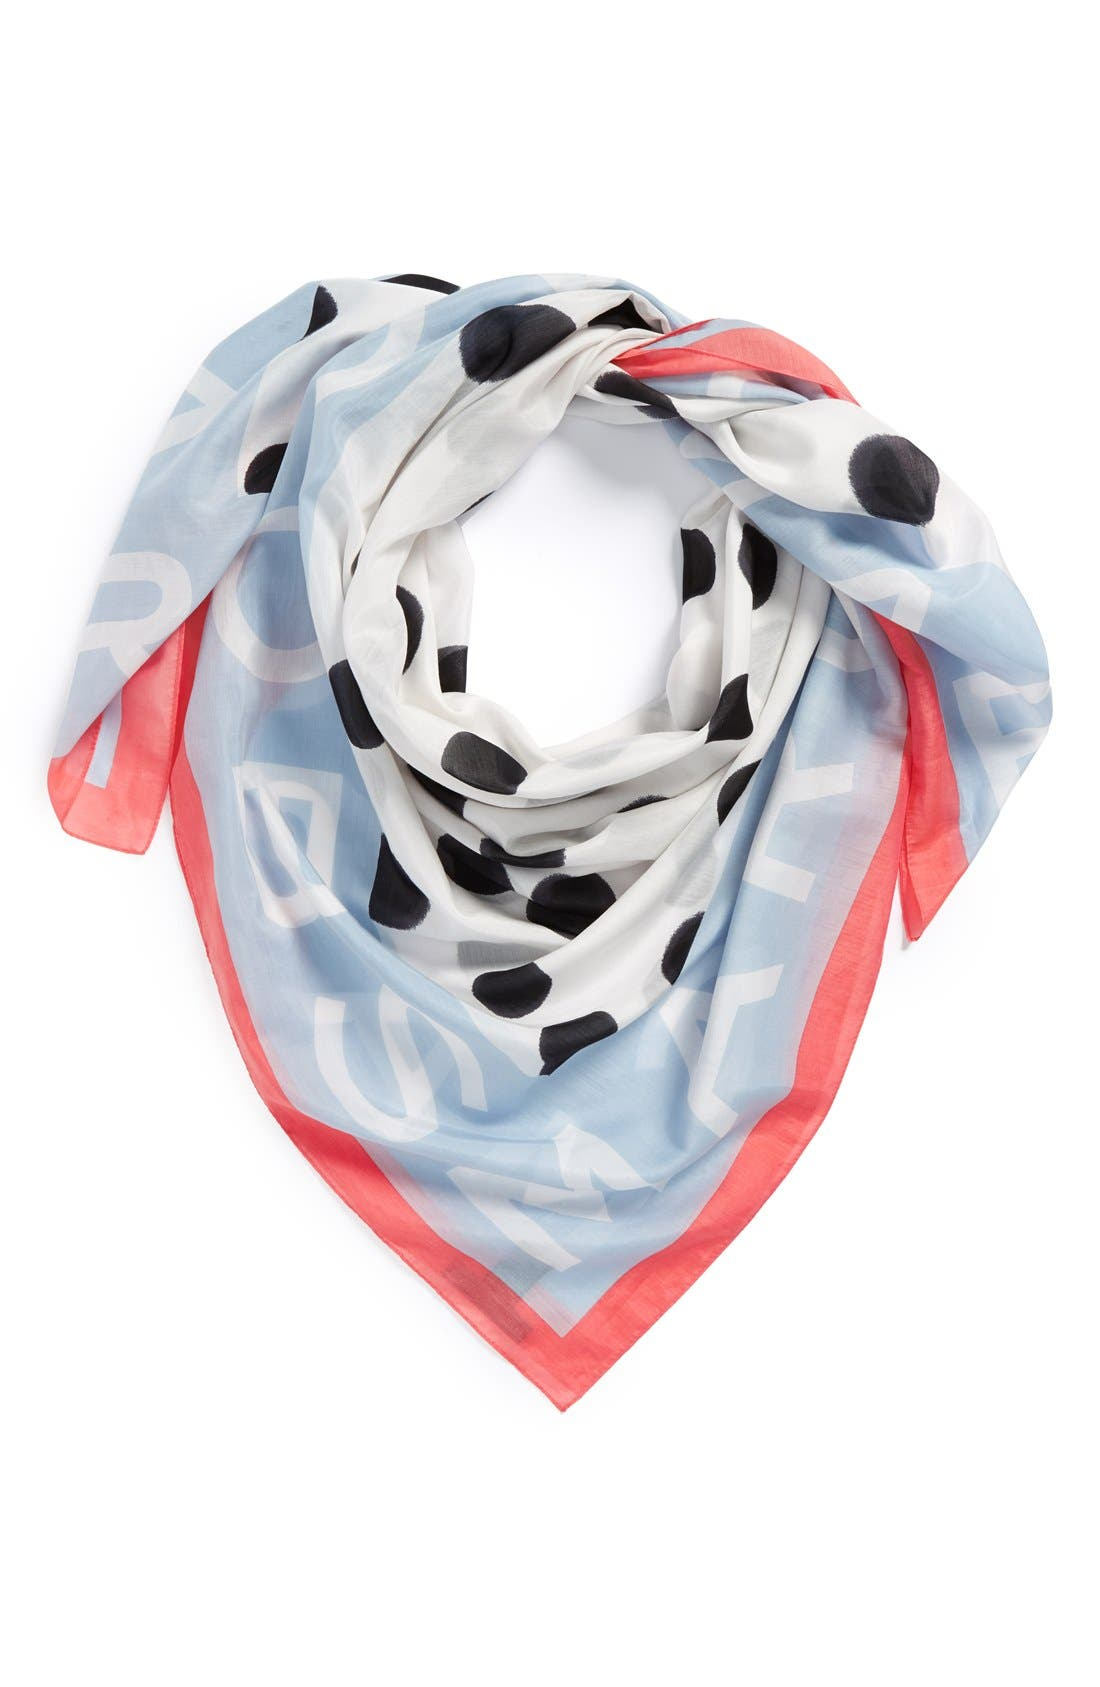 MARC JACOBS, MARC BY MARC JACOBS 'Blurred Dot' Cotton & Silk Square Scarf, Main thumbnail 1, color, 100